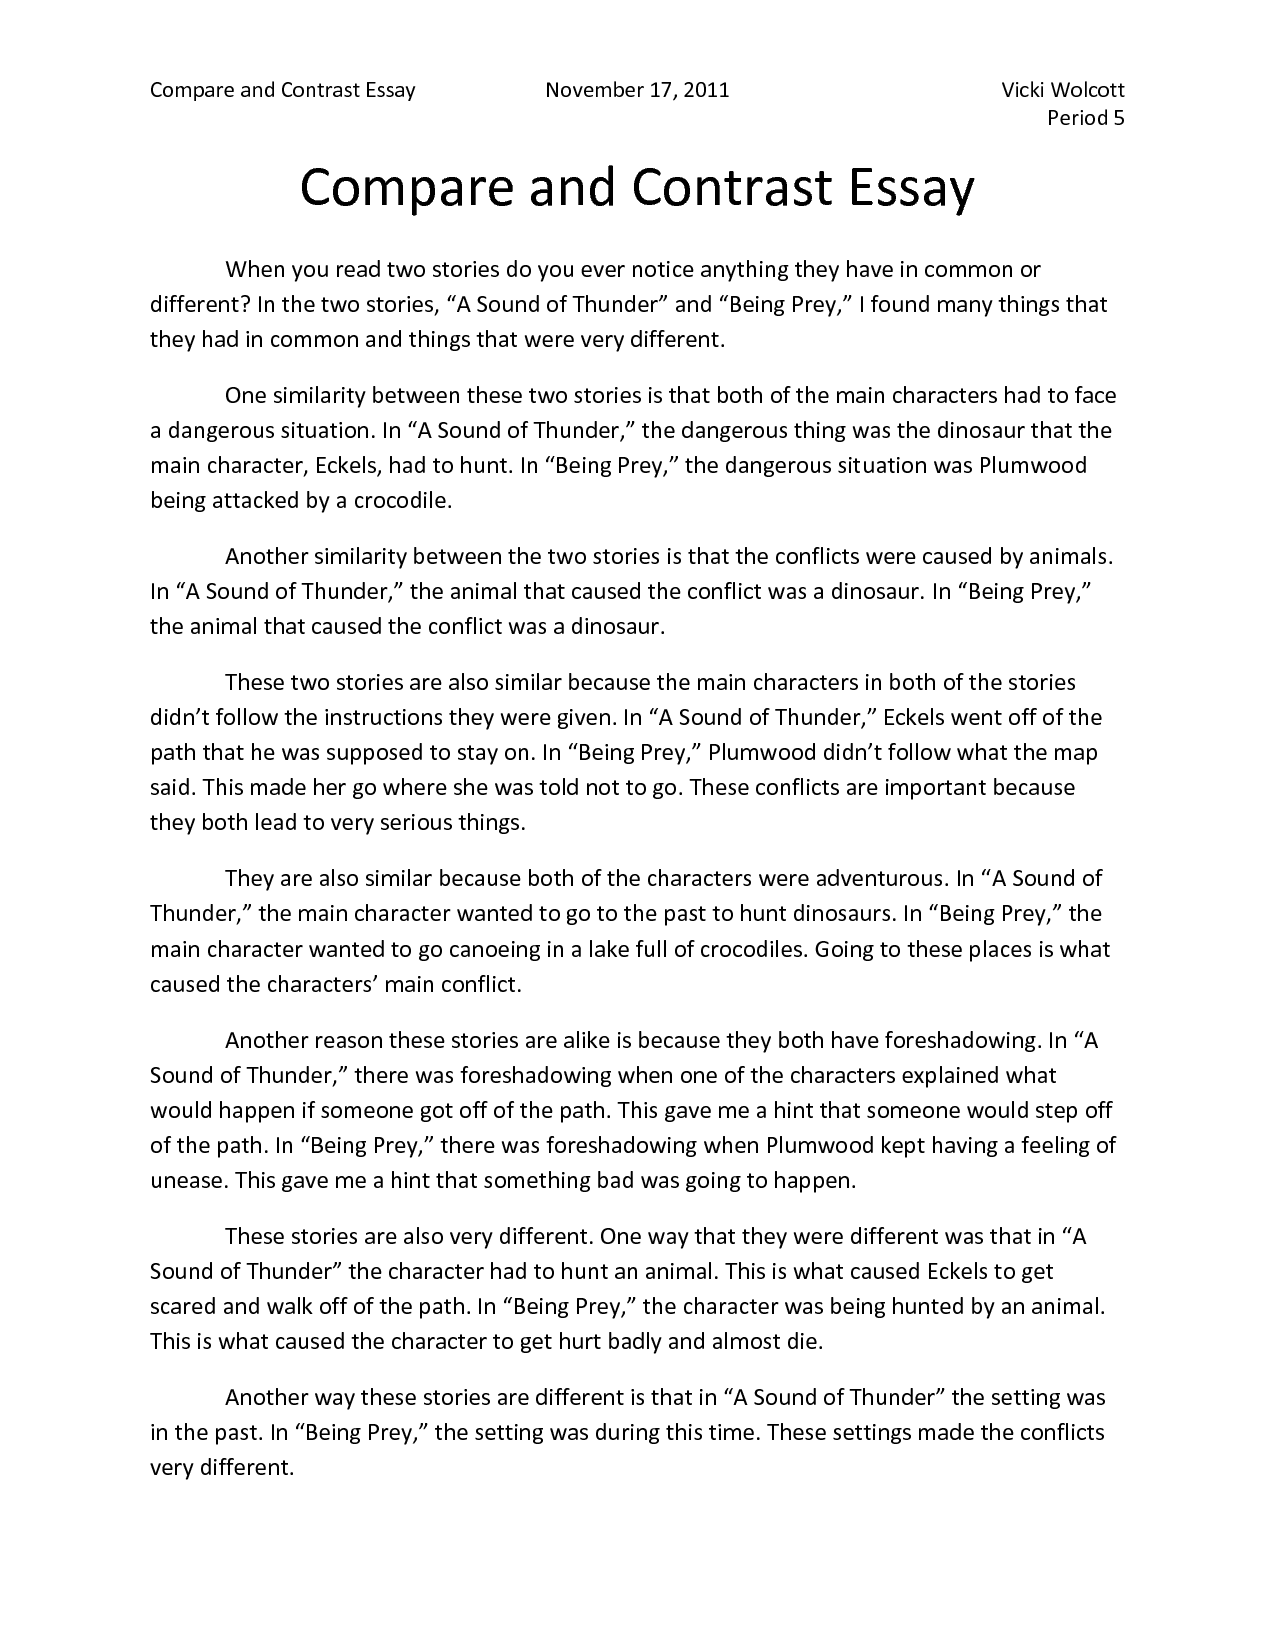 004 Essay Example Compare And Contrast Gallery Template Drawing Art Throughout College Examples Introduction Question Scholarship Free Edexcel Conclusion Frightening Prompts 5th Grade Rubric Ideas 12th Full